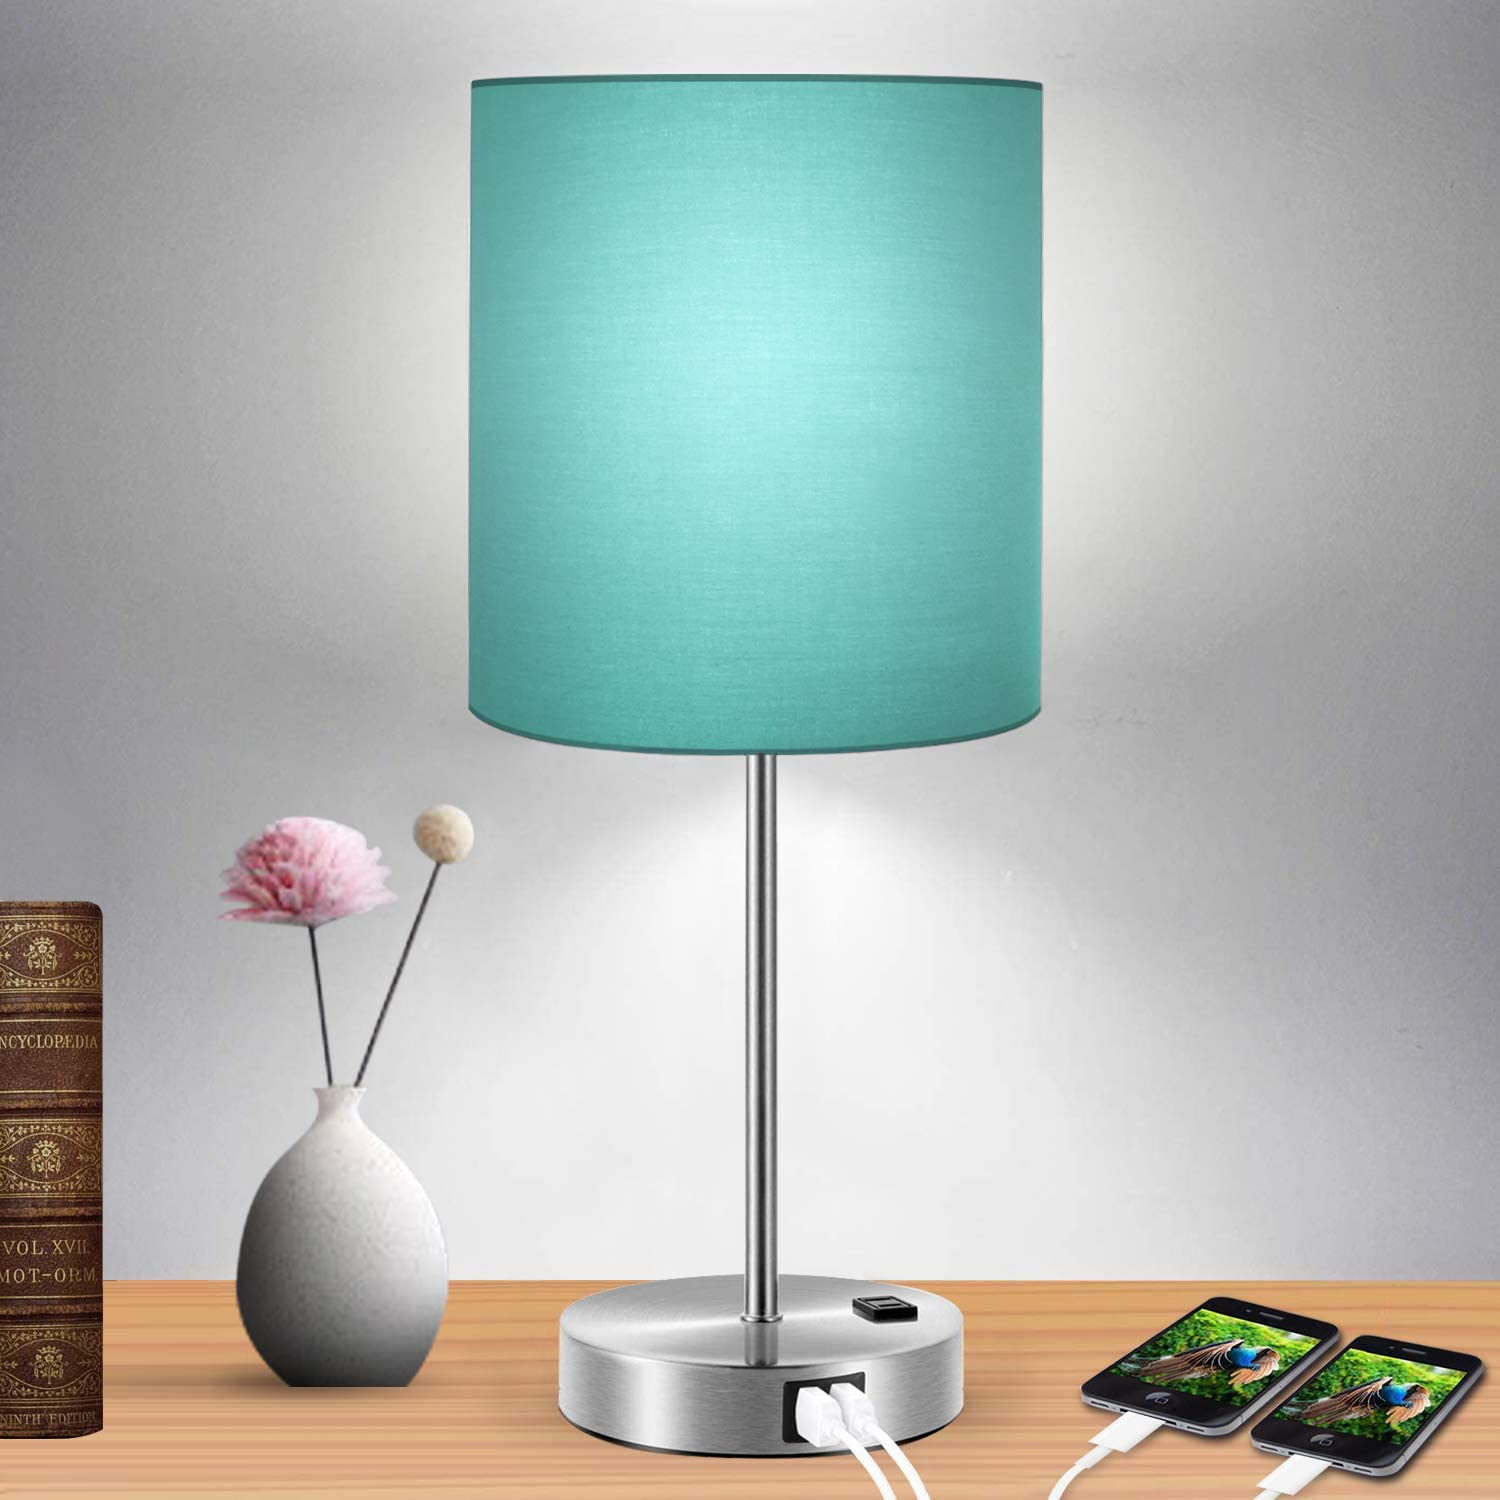 Touch Control Table Lamp Now free shipping Green Dimmable Shade 3-Way 2 with Topics on TV